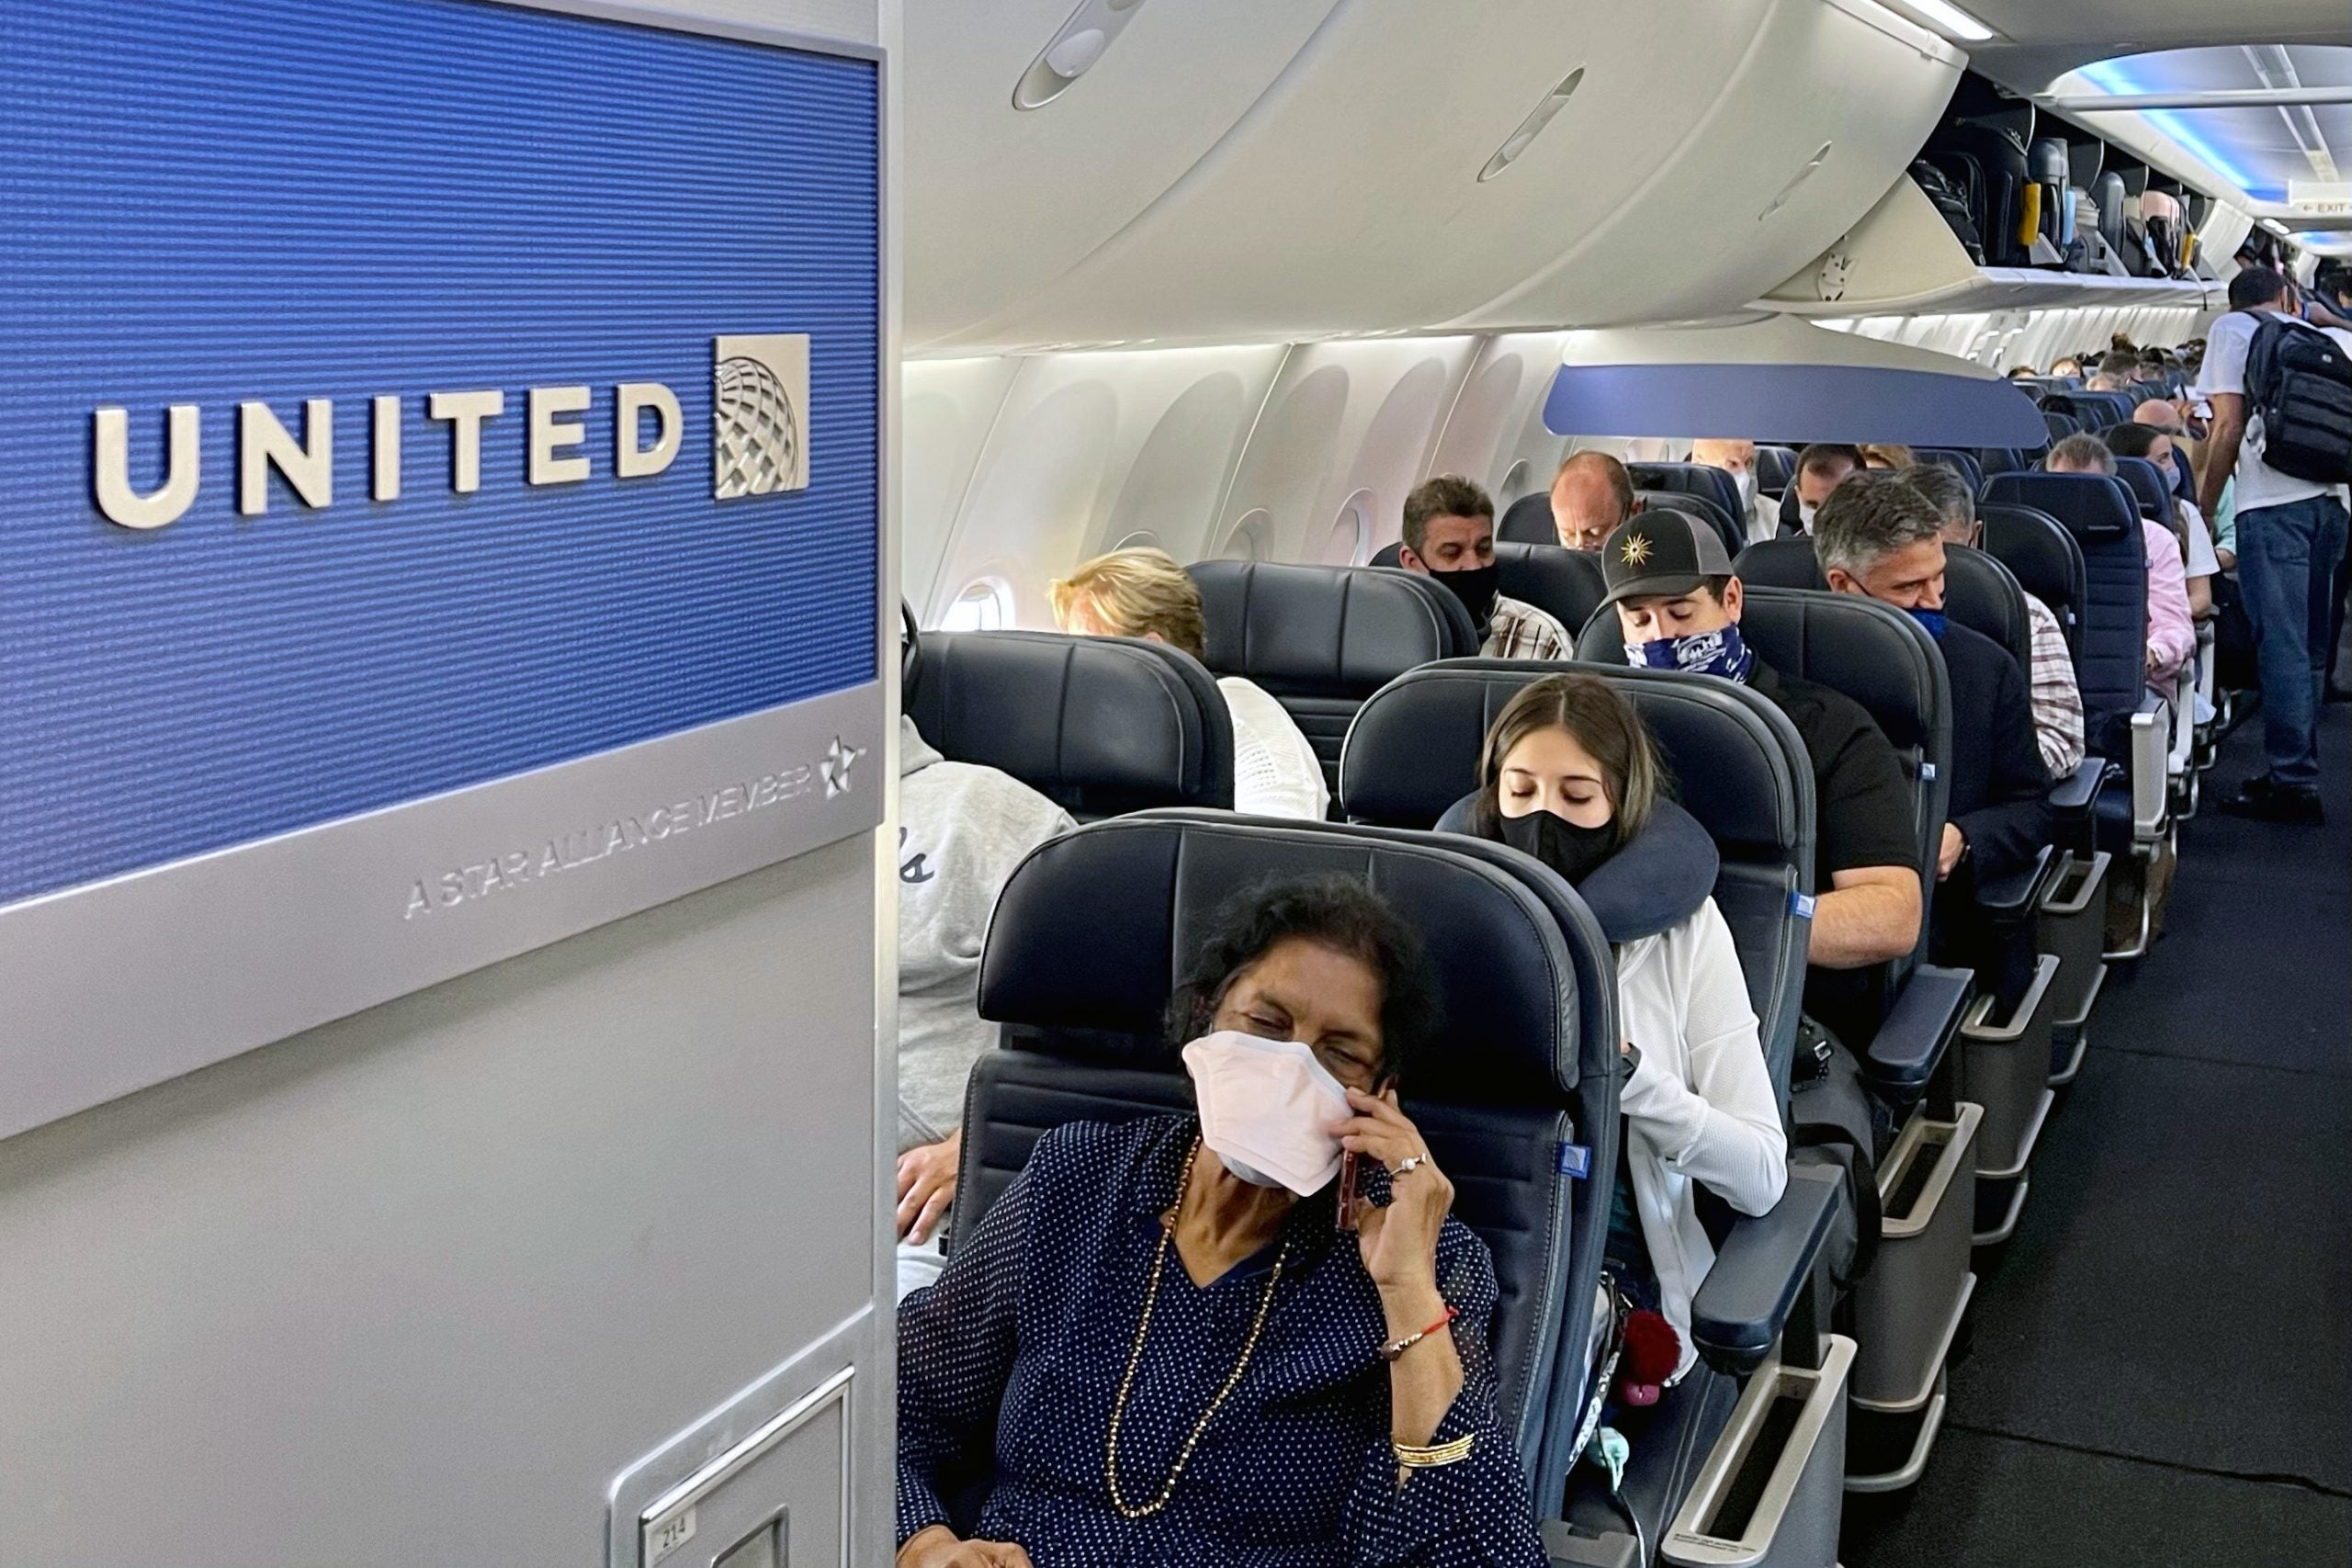 United discontinues practice of allowing free changes for 'fuller' flights